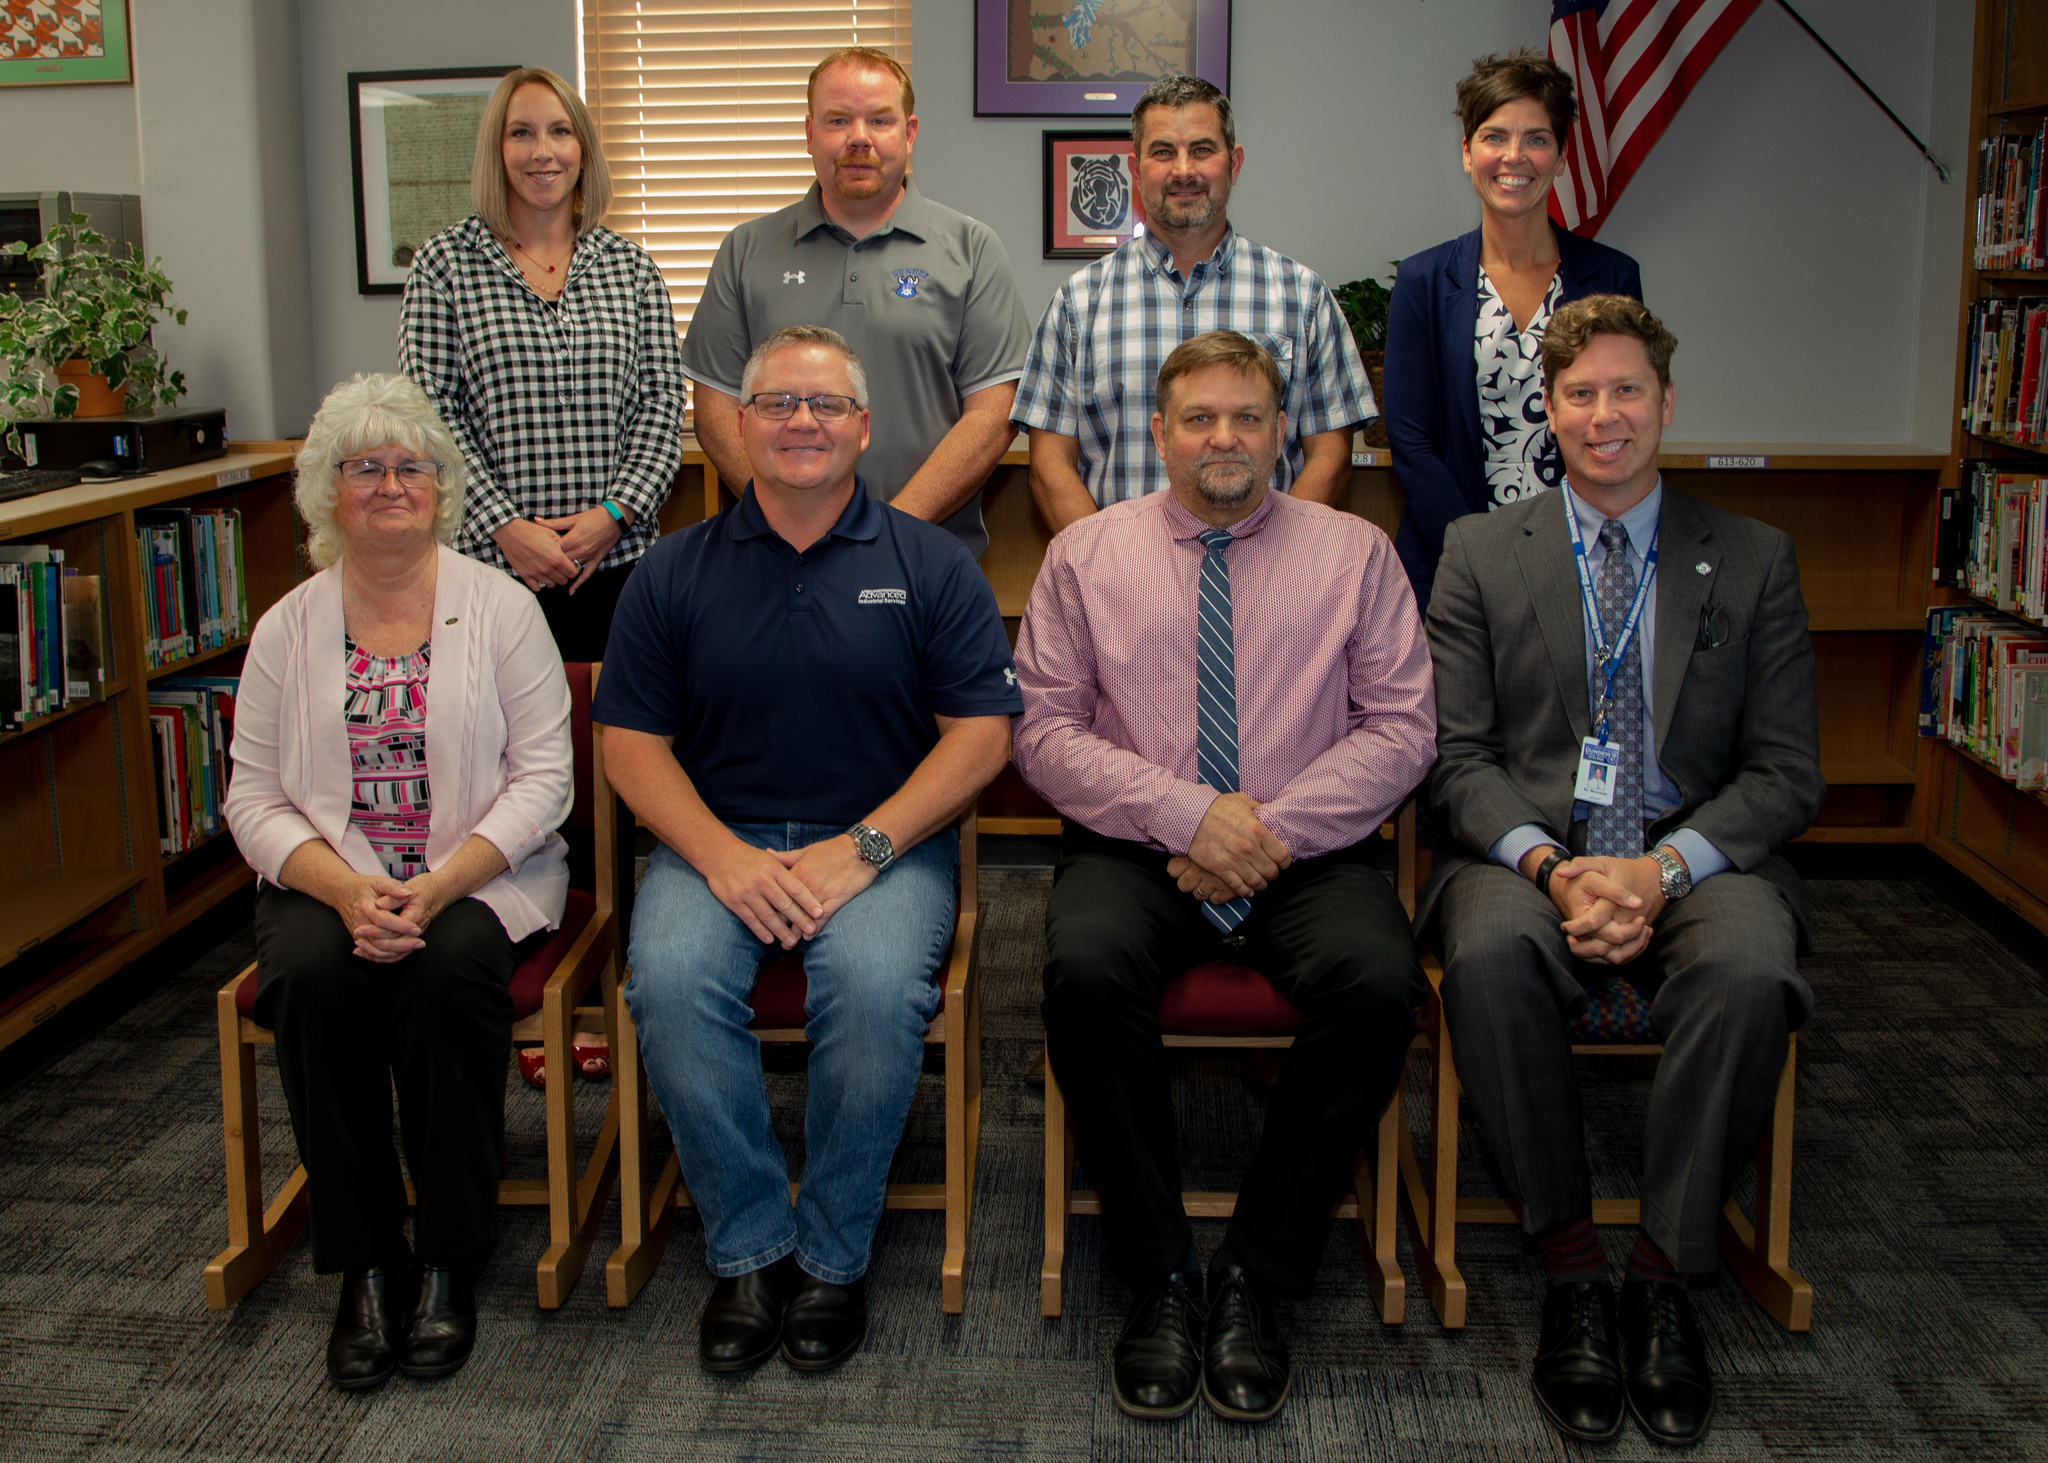 photo of the 2019-2020 school board members